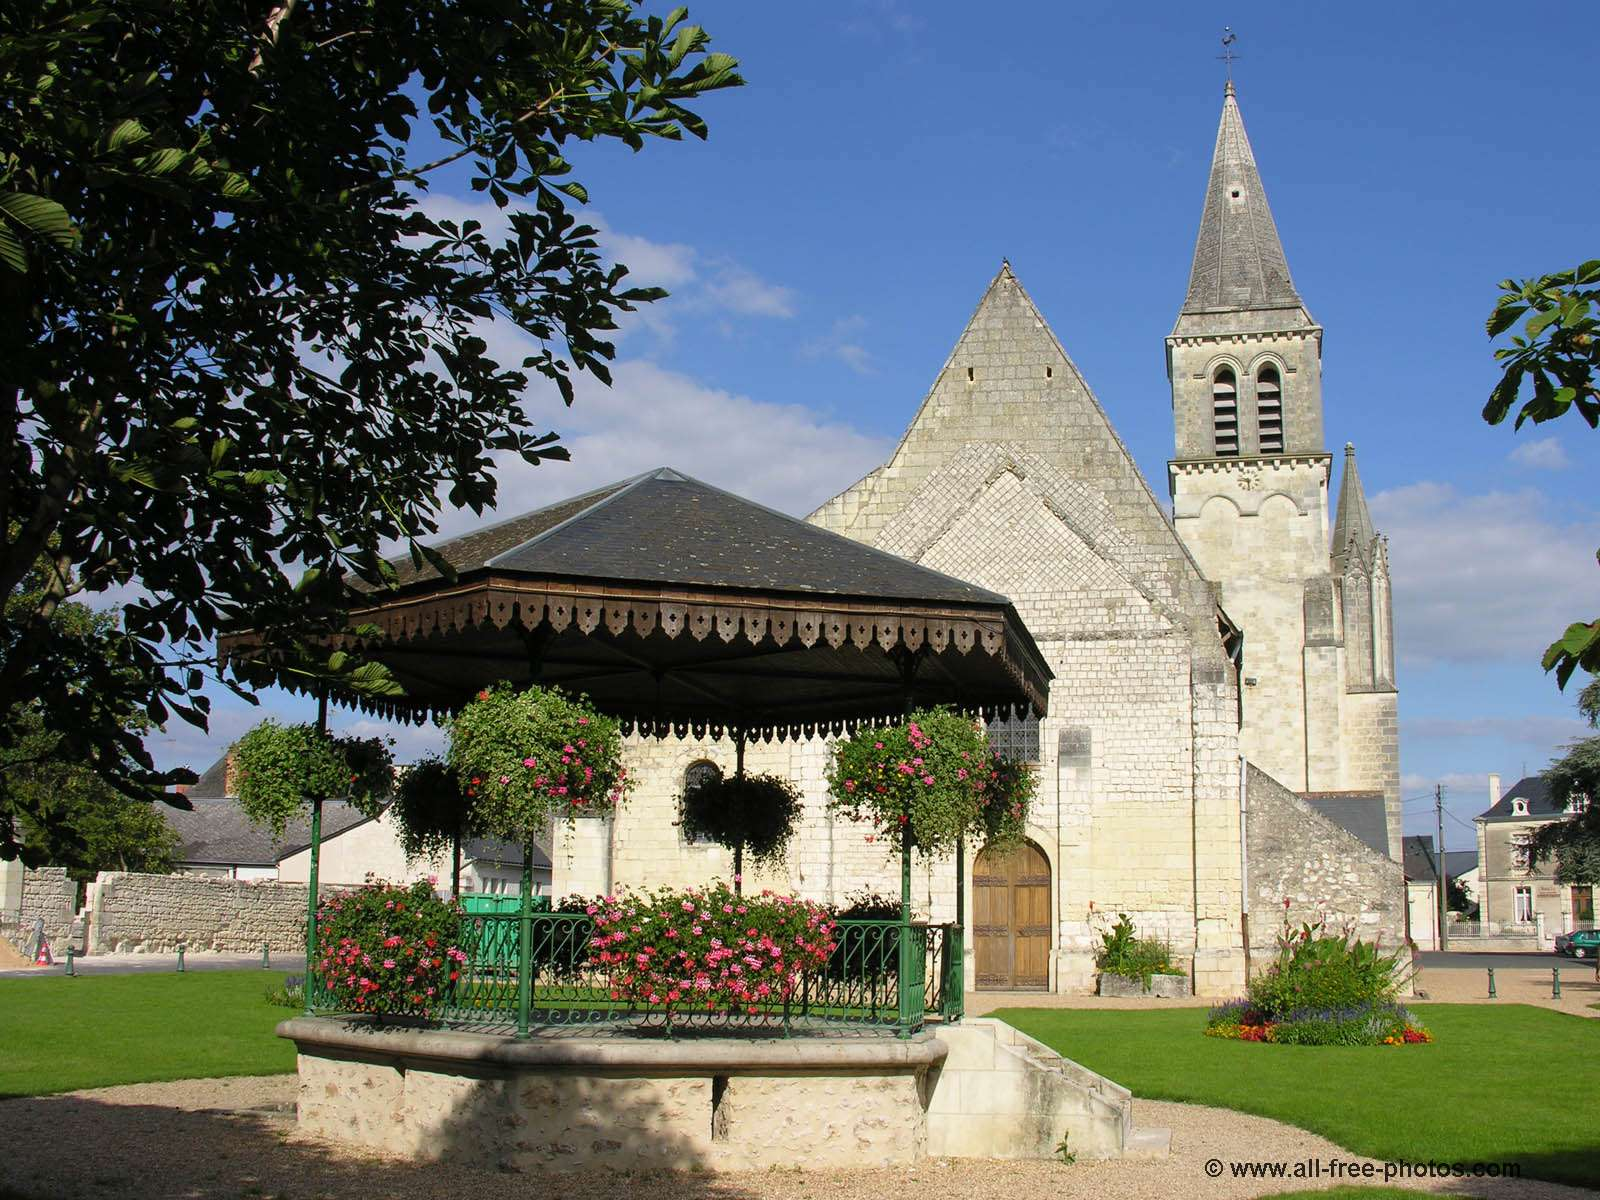 Eglise de Restigné - France